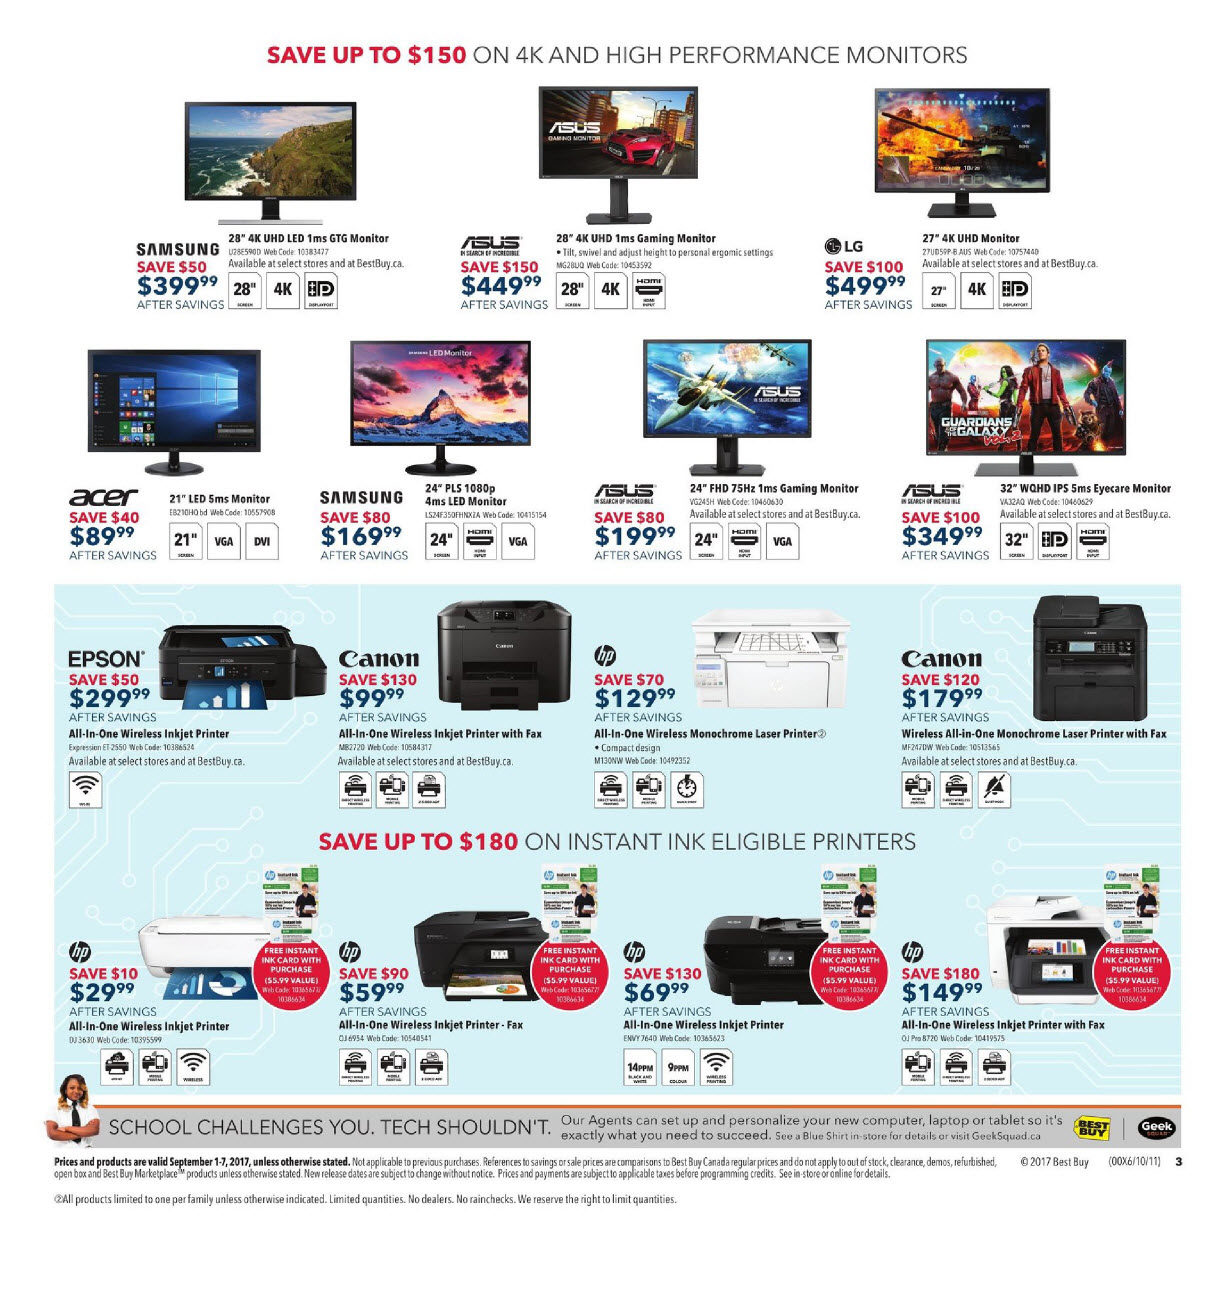 Best buy weekly flyer weekly labour day sale sep 1 7 best buy weekly flyer weekly labour day sale sep 1 7 redflagdeals fandeluxe Image collections